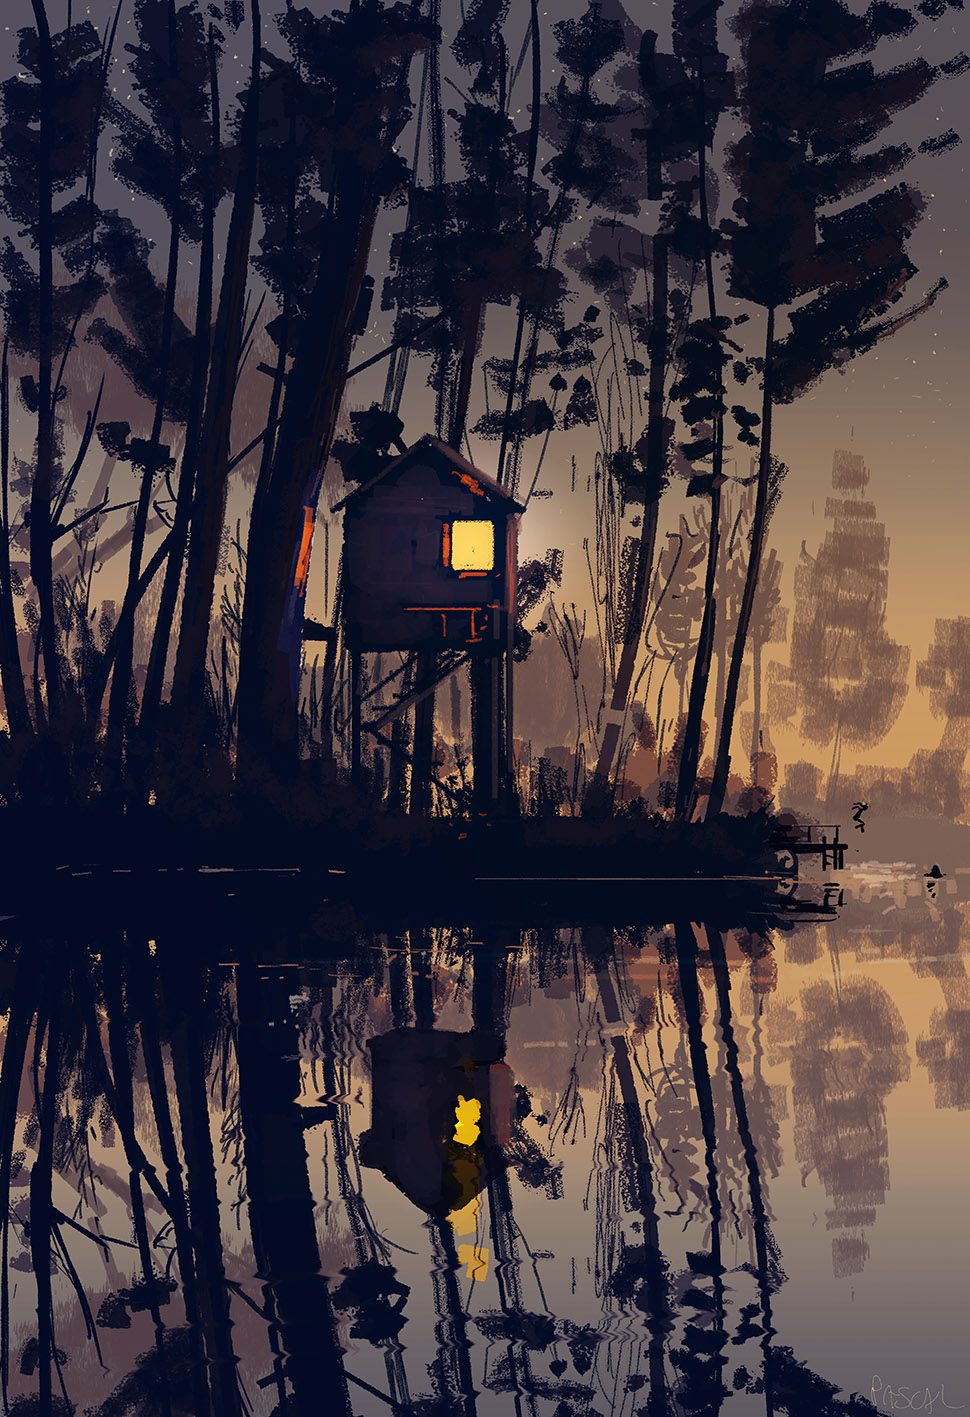 https://pre00.deviantart.net/c0c5/th/pre/f/2018/292/0/a/4606_13rdc_by_pascalcampion-dcpvfem.jpg